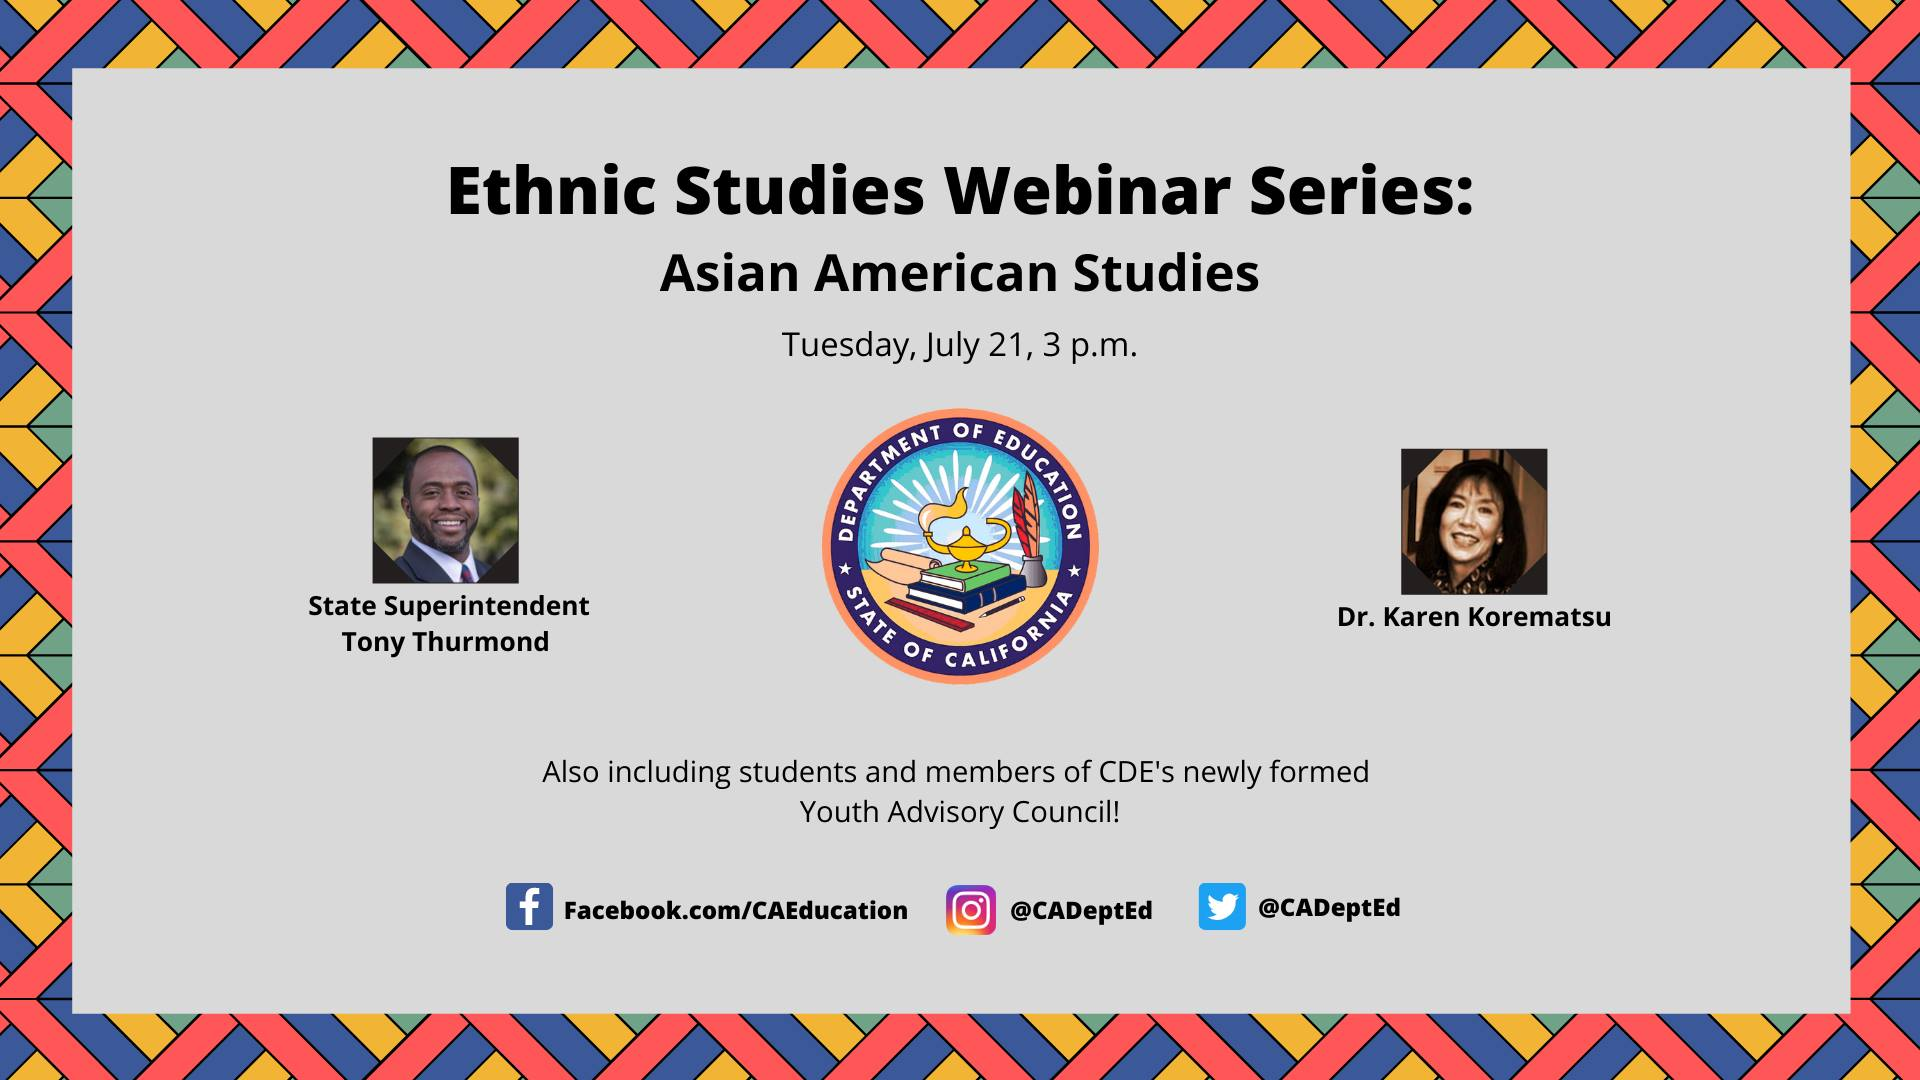 Ethnic Studies Webinar Series: Asian American Studies